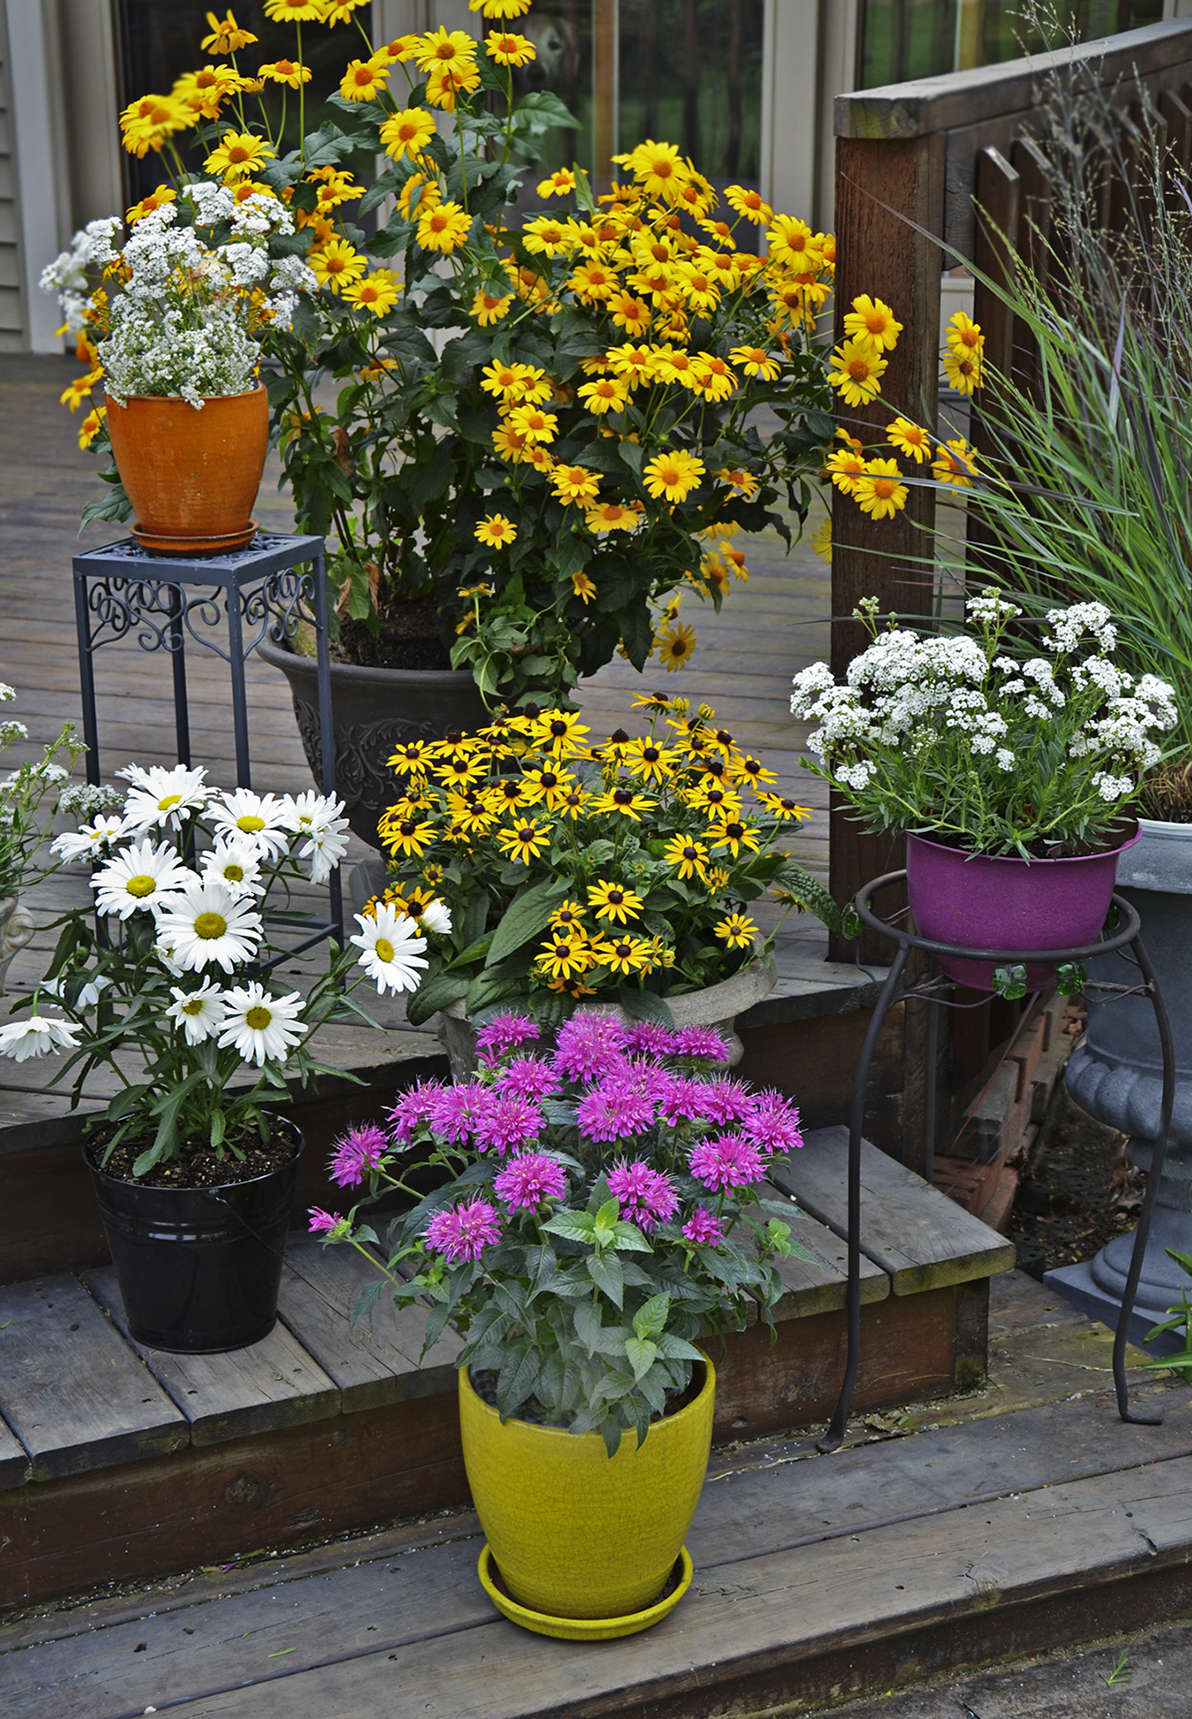 The Complete Guide to Growing Perennials in Containers ... on full sun plants, plateau plants, zone 4 trees, evergreen rock garden plants, california plants, usda plants, united kingdom plants, zone 4 architecture, temperature zones for plants, zone 4 vines, garden mums plants, zone 4 landscaping, zone 4 flowers, zone 4 grasses, south dakota plants, san francisco plants, zone 4 gardening, roses plants, zone 4 roses, unknown plants,